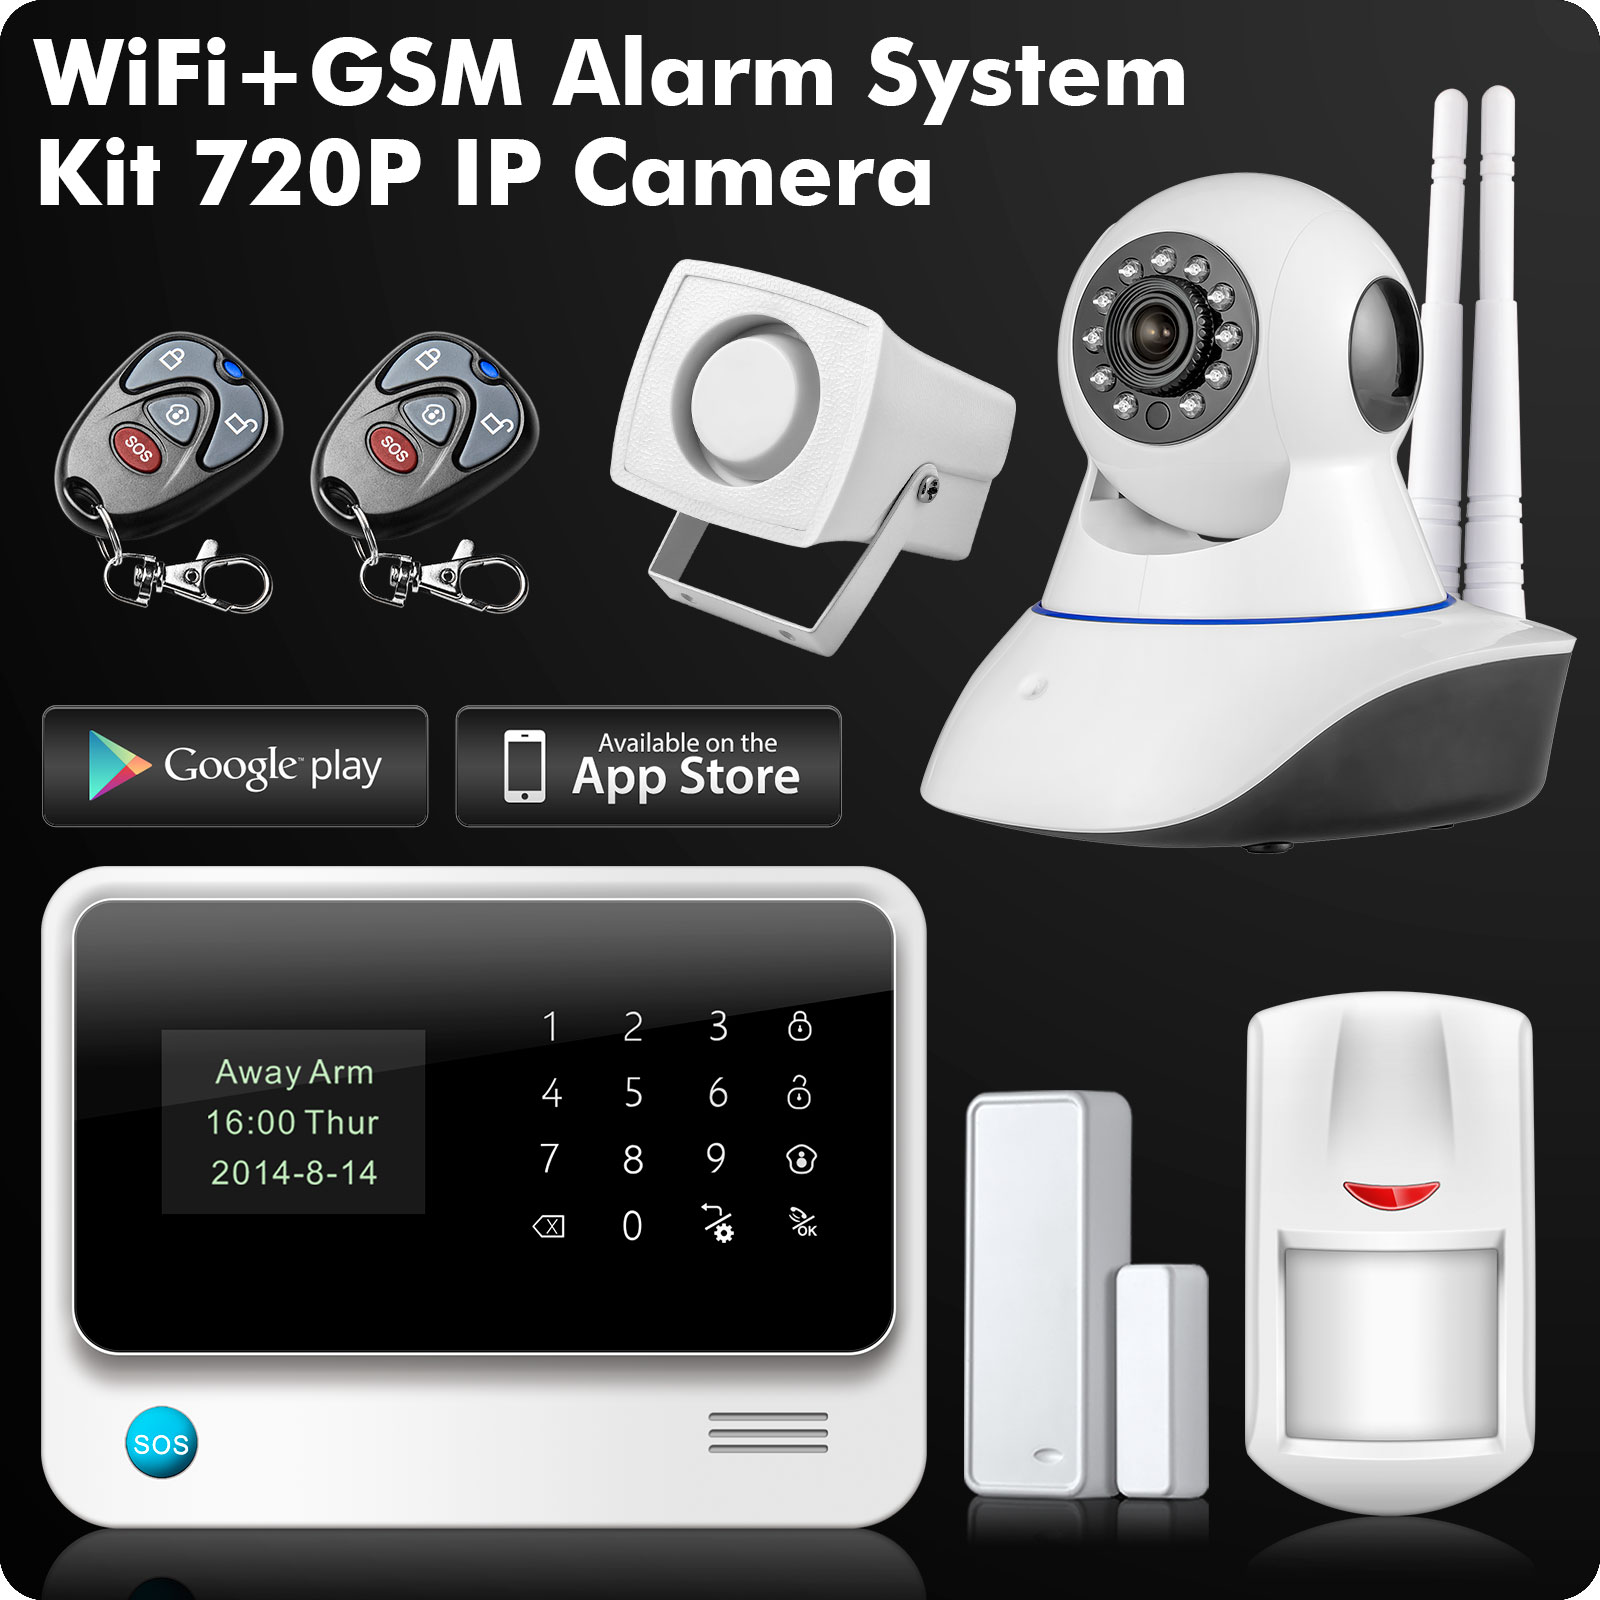 G90B 2.4G WiFi GSM GPRS SMS Wireless Home Security Alarm System IOS Android APP Remote Control Detector Sensor